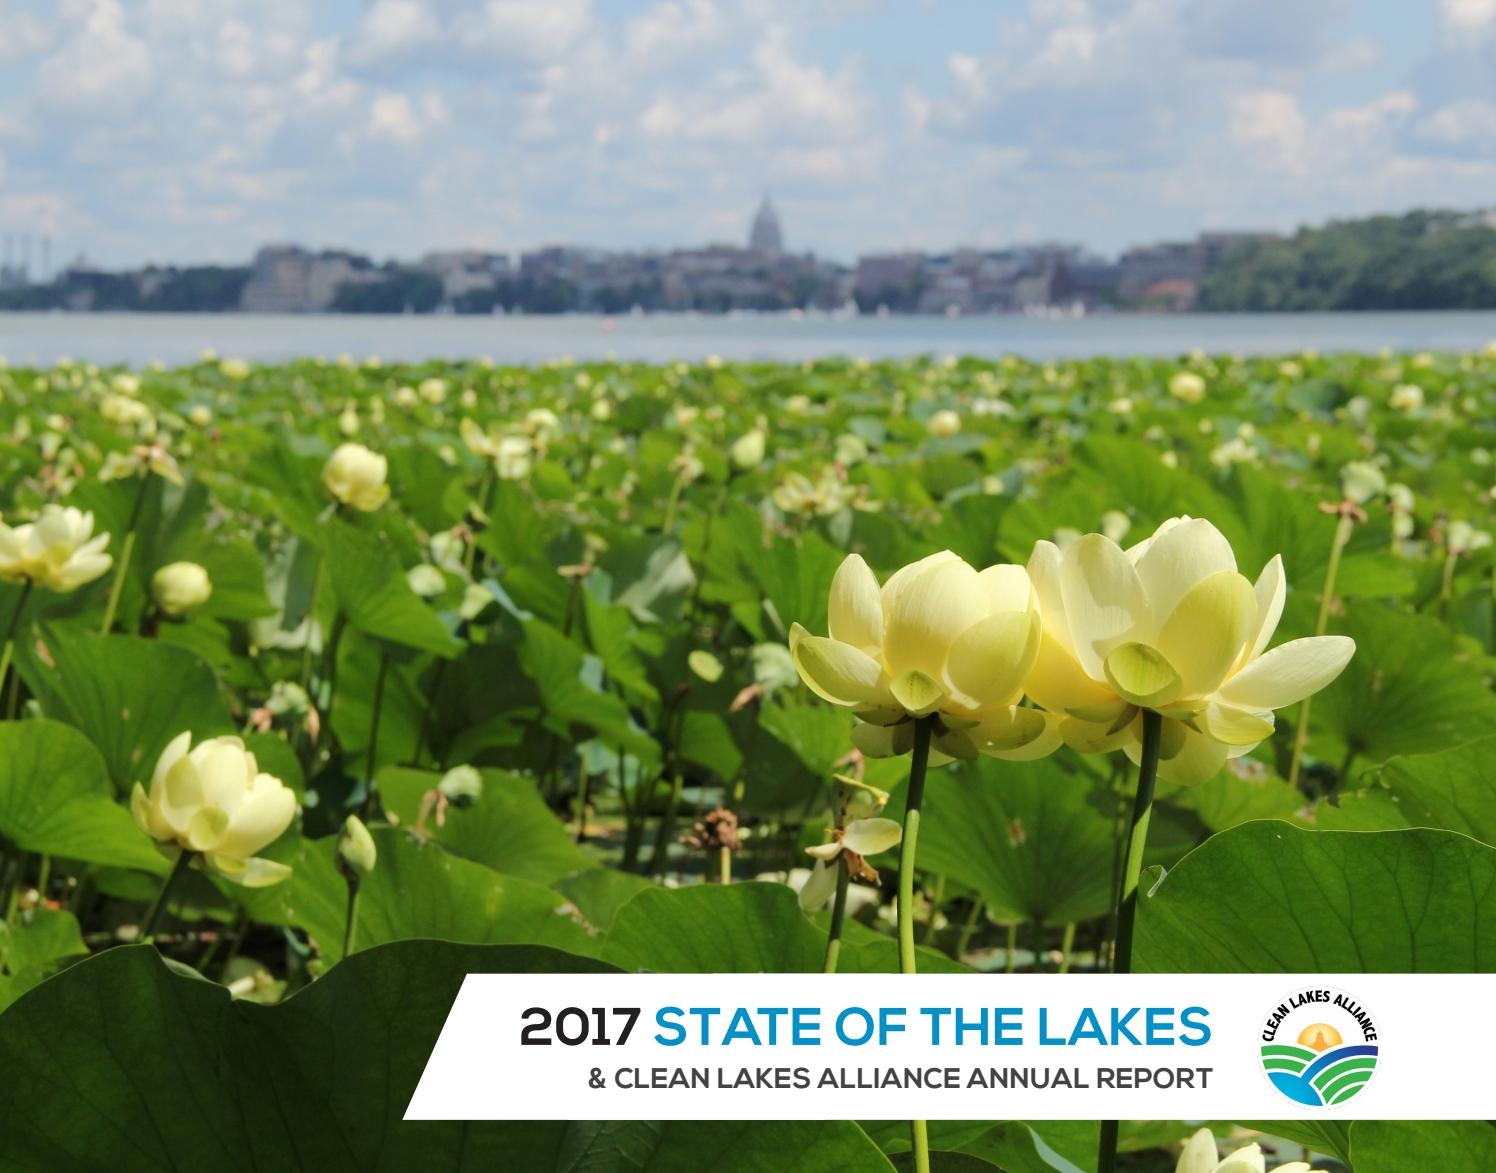 2017 State of the Lakes Annual Report by Clean Lakes